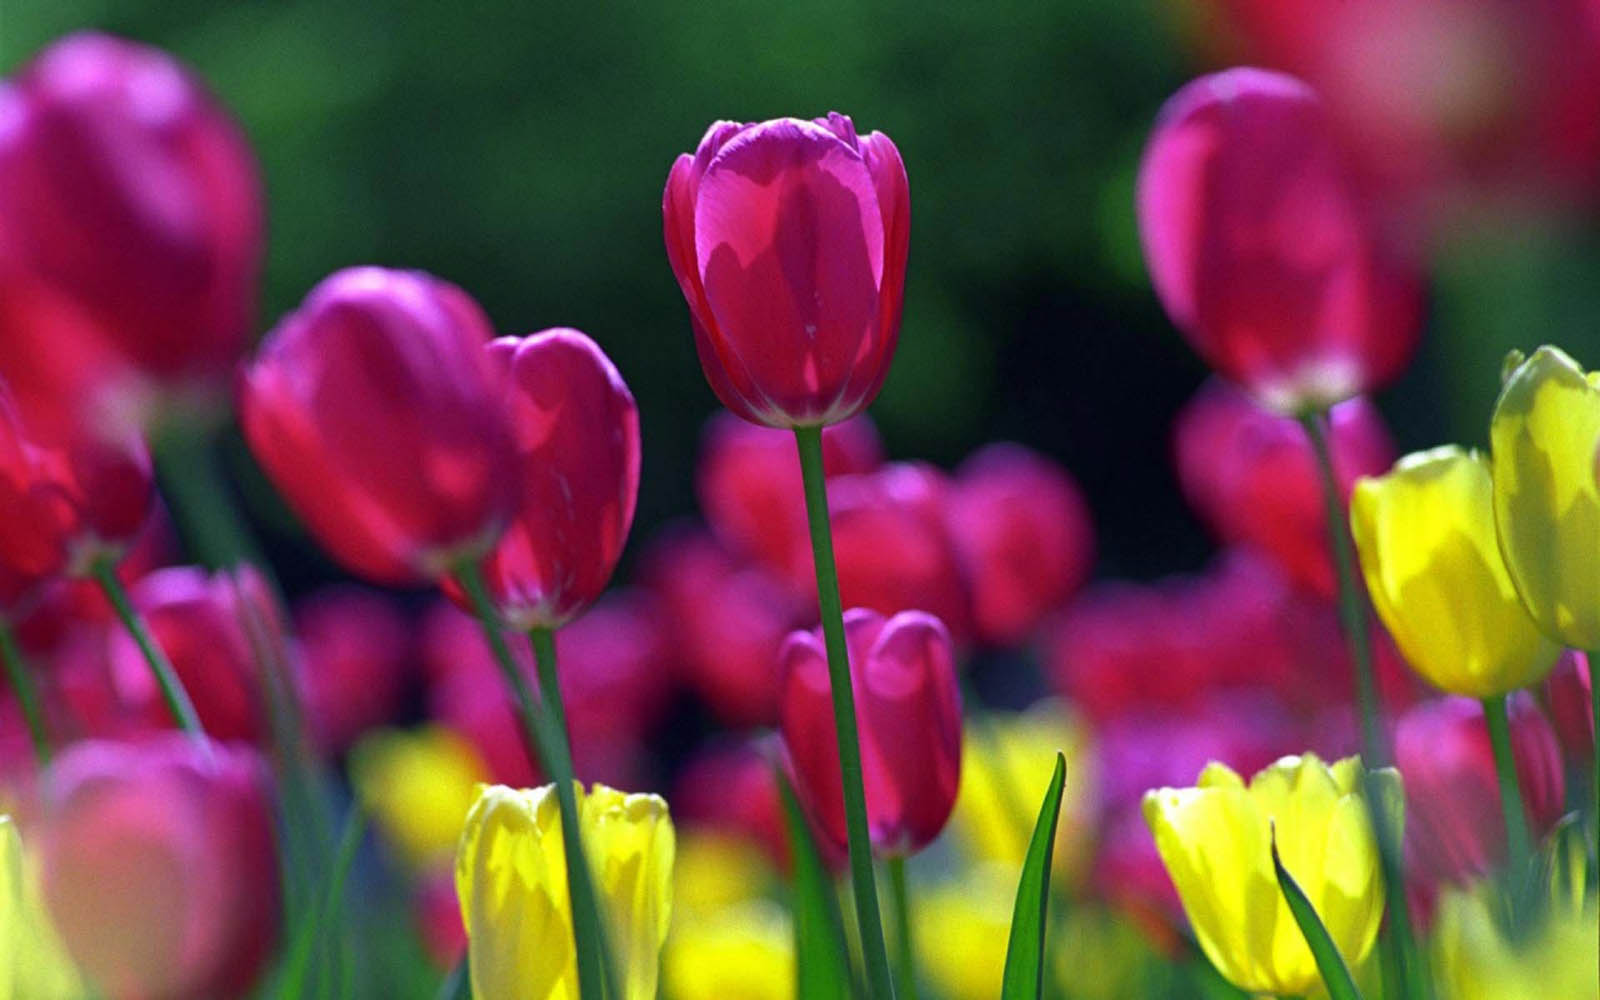 Spring Flowers Wallpapers Images Photos Pictures and Backgrounds 1600x1000